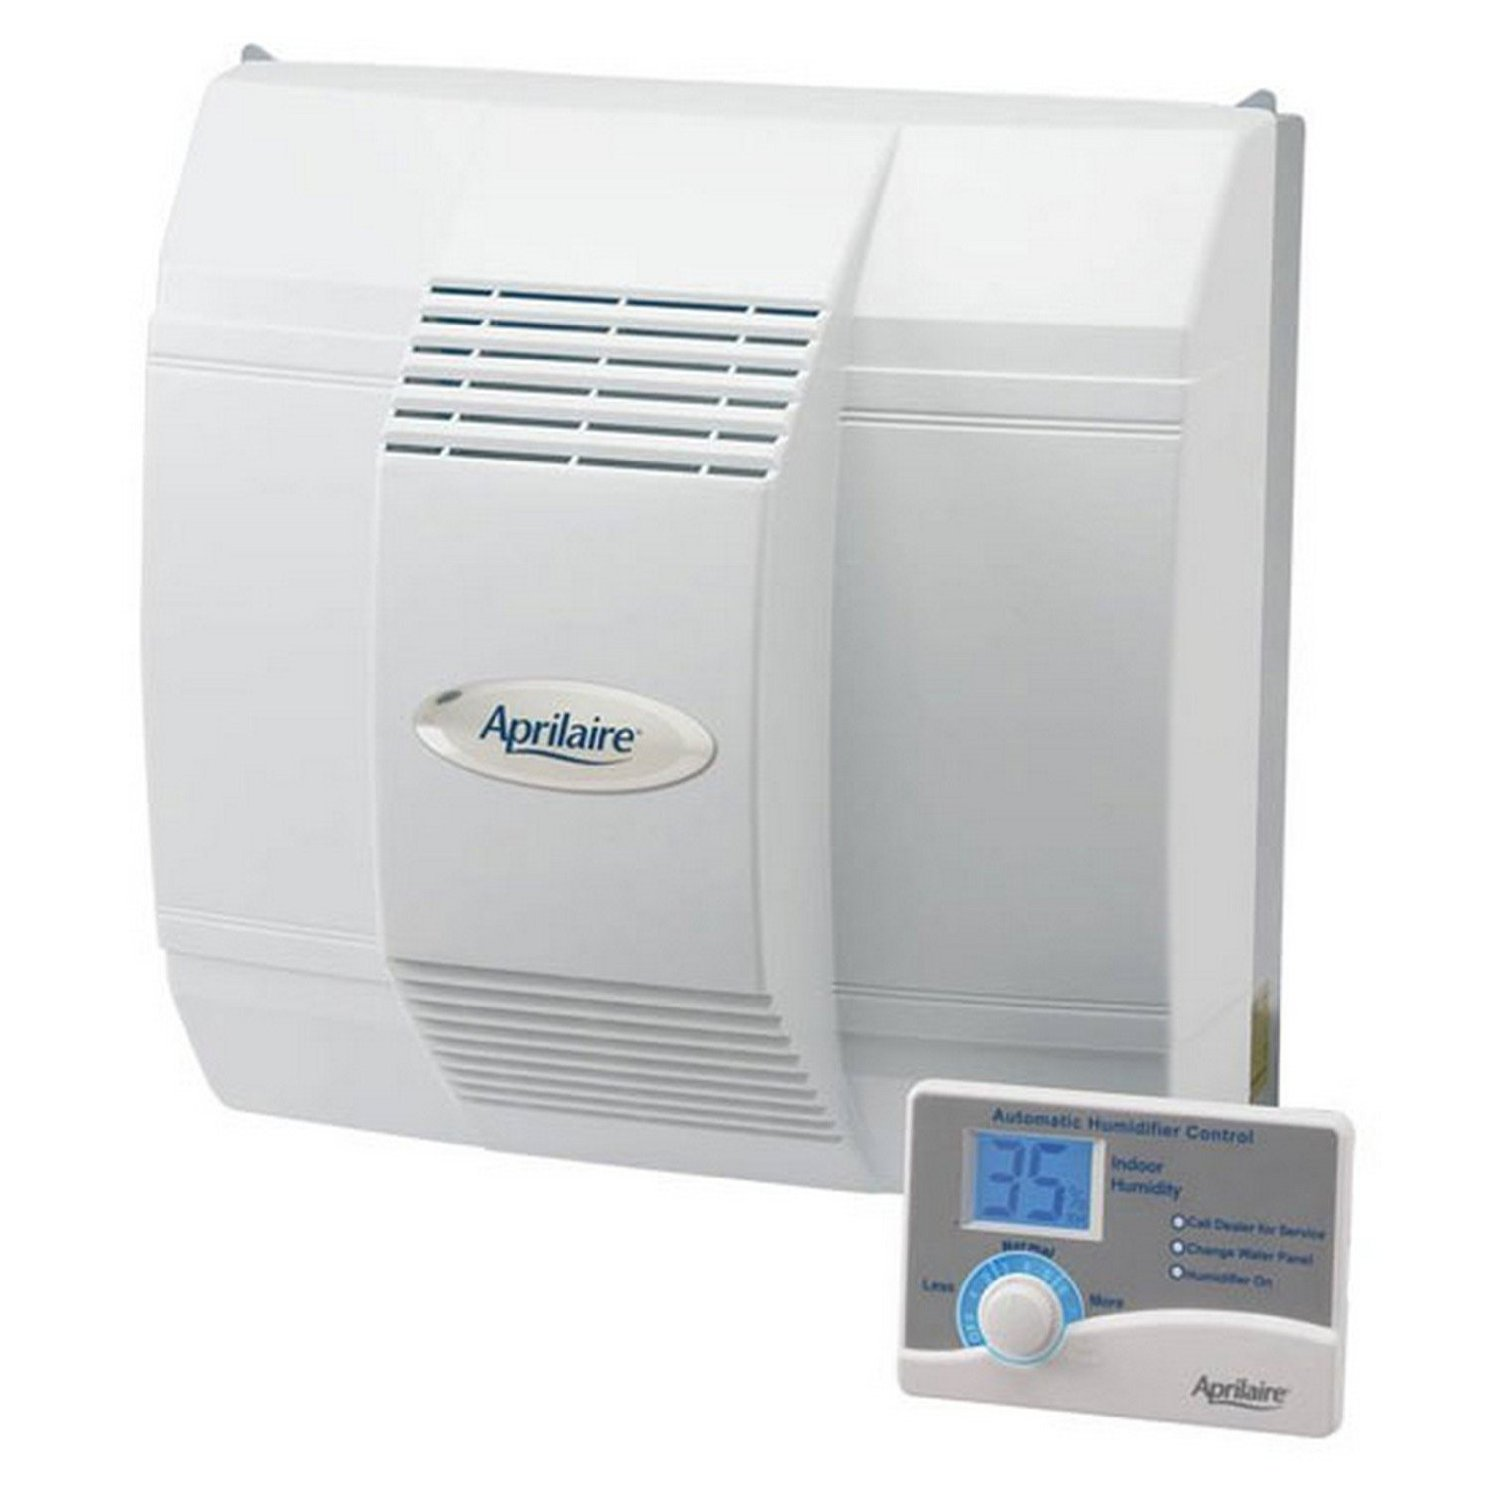 5 tips for choosing a furnace humidifier for How to choose a furnace for your home